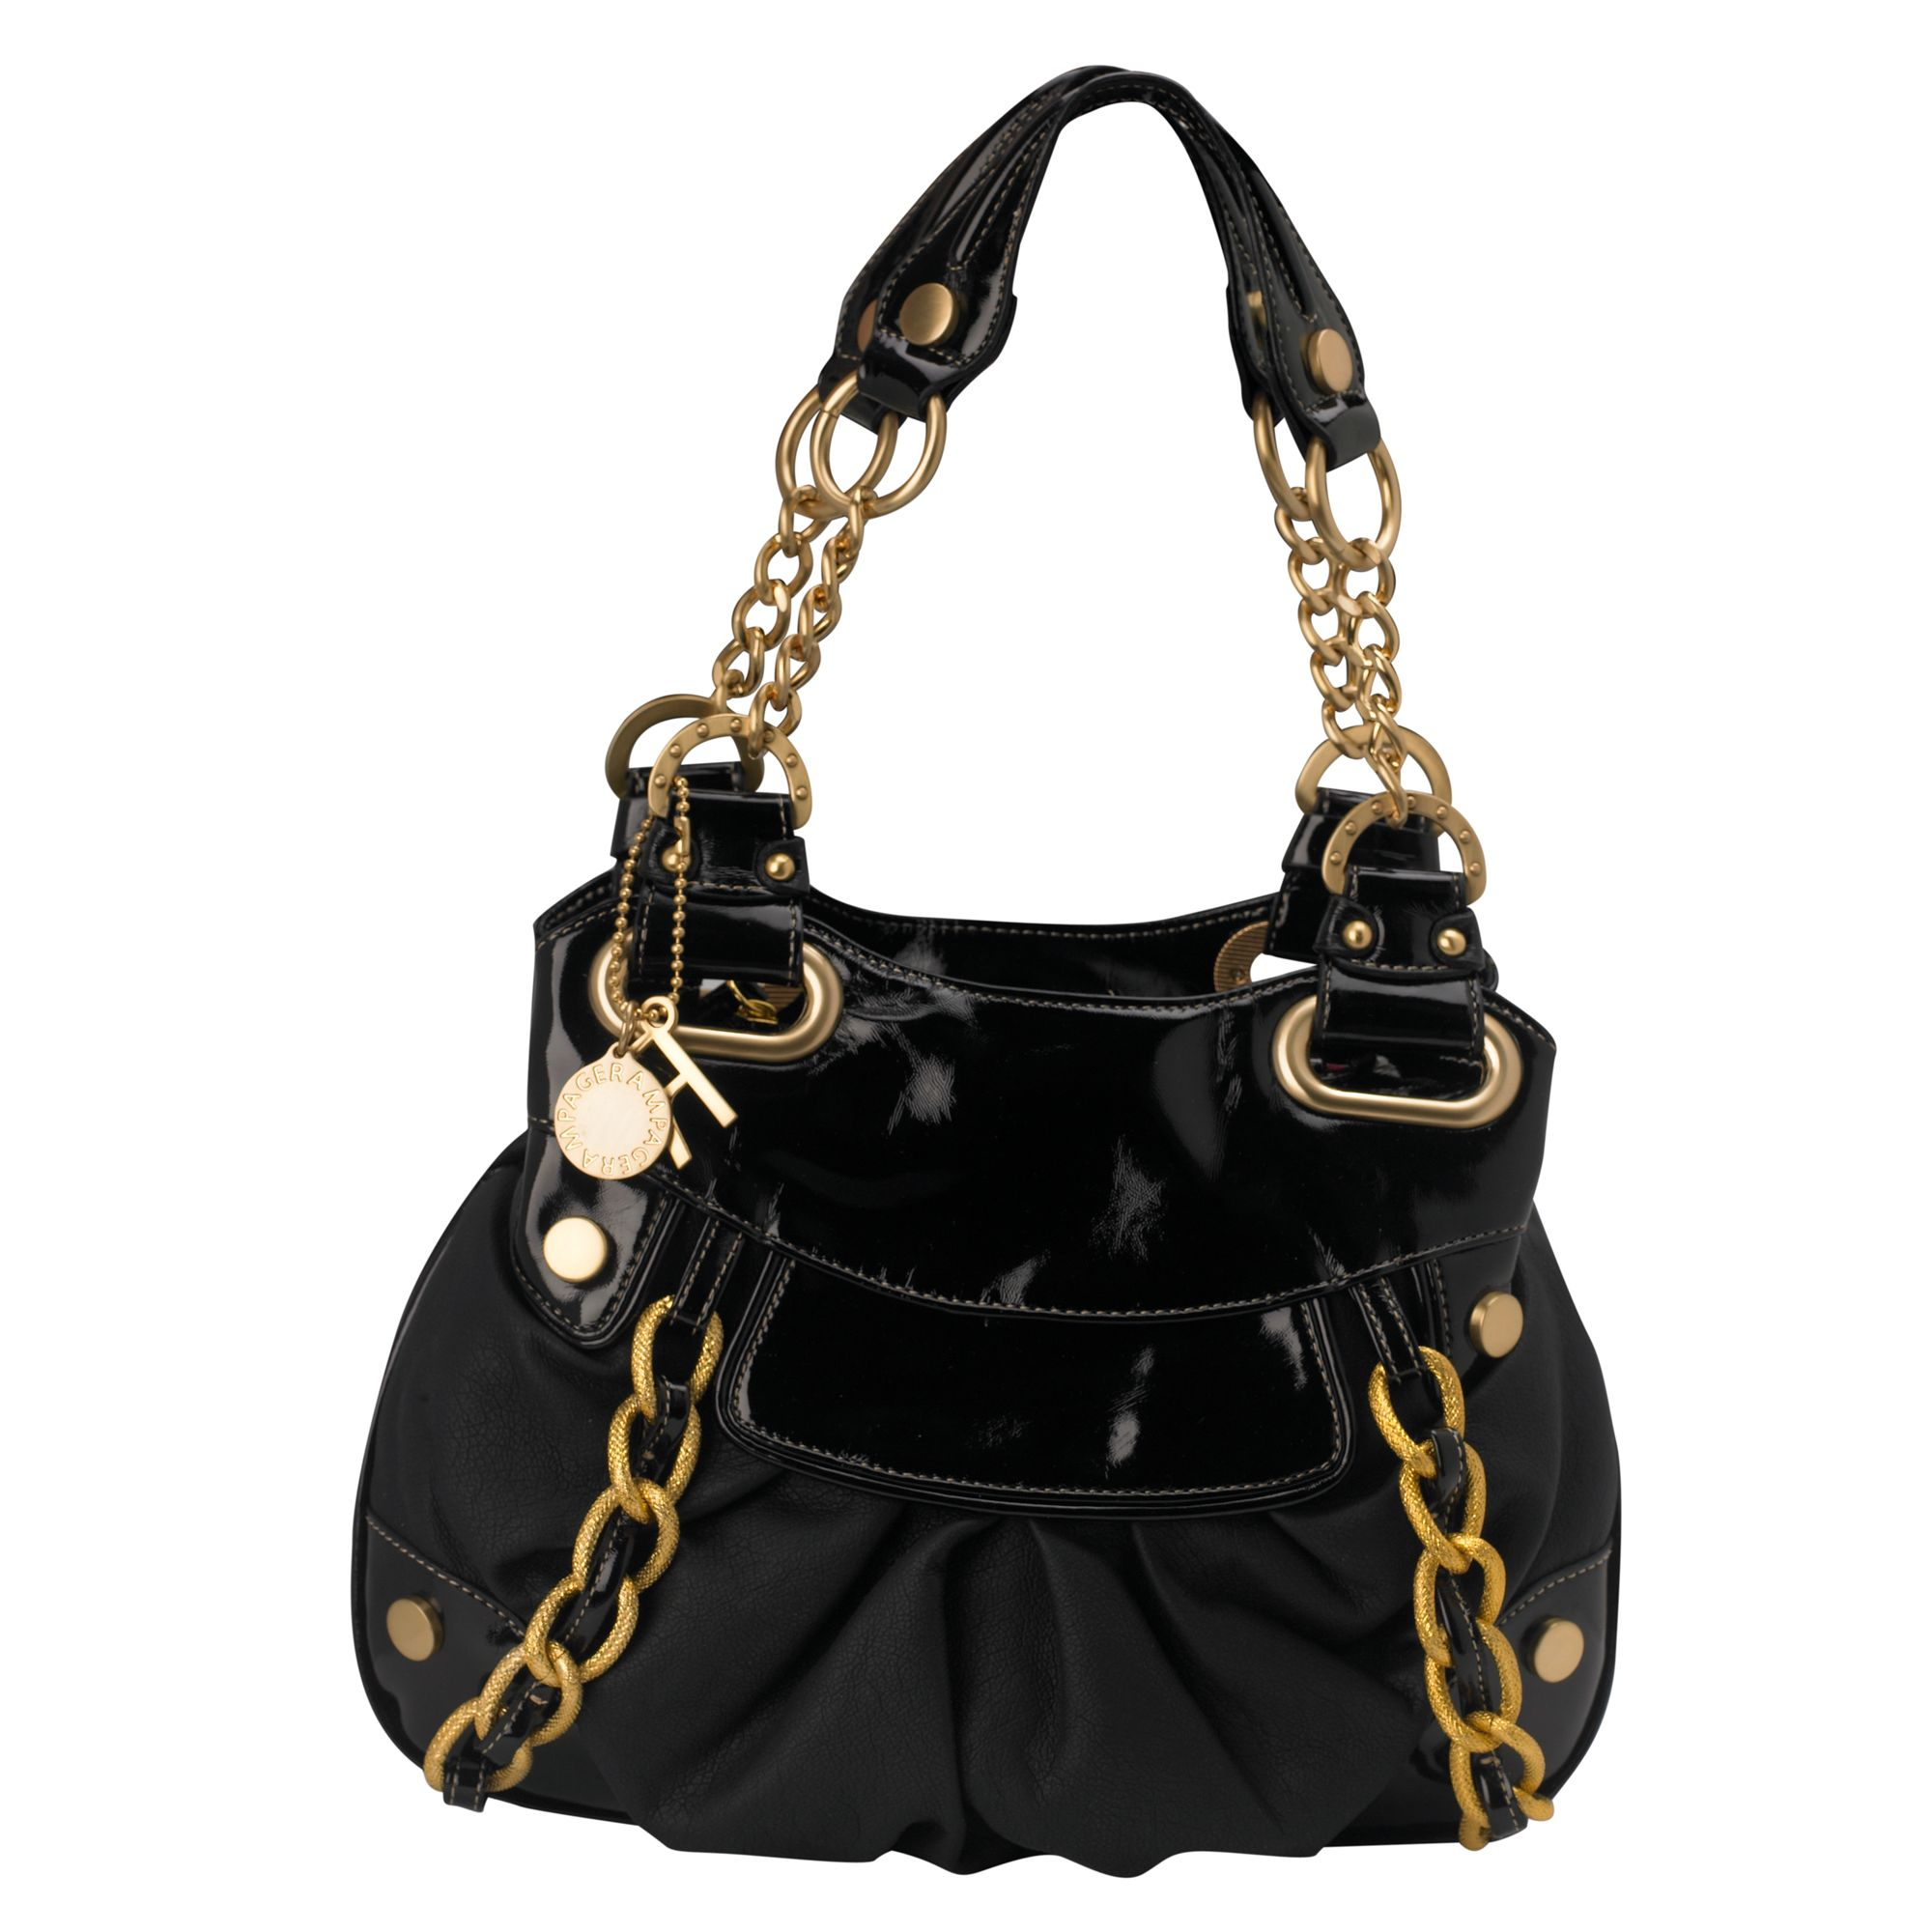 Shop Rampage Women's Bags at up to 70% off! Get the lowest price on your favorite brands at Poshmark. Poshmark makes shopping fun, affordable & easy!